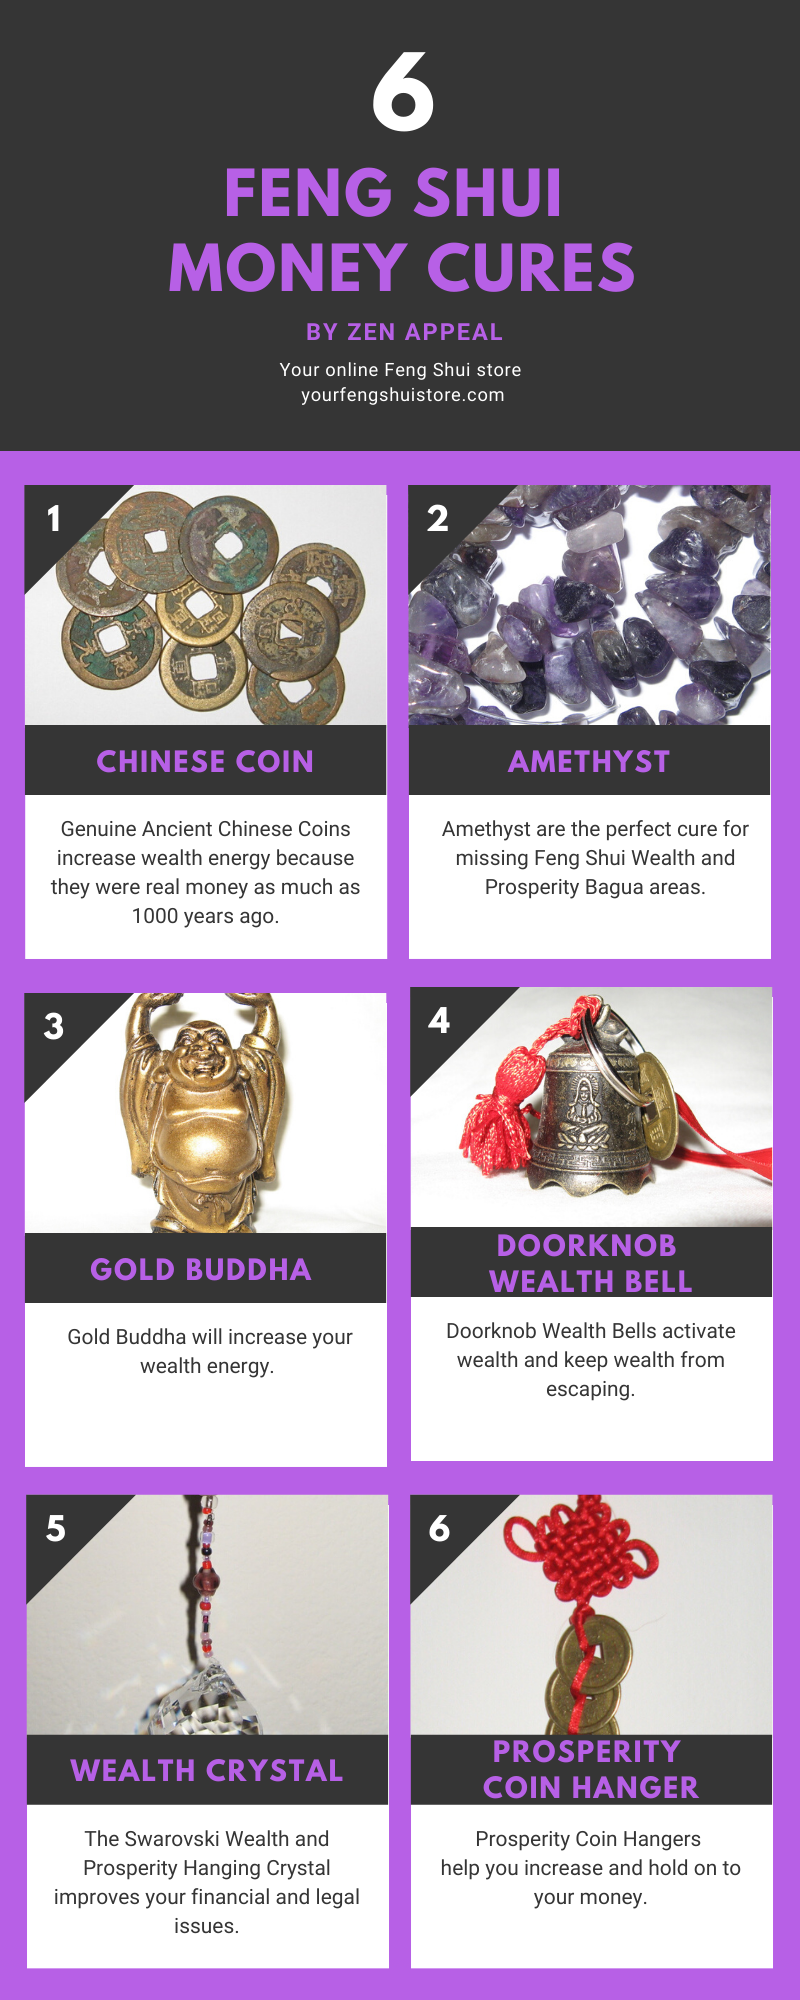 Feng Shui Money Cures